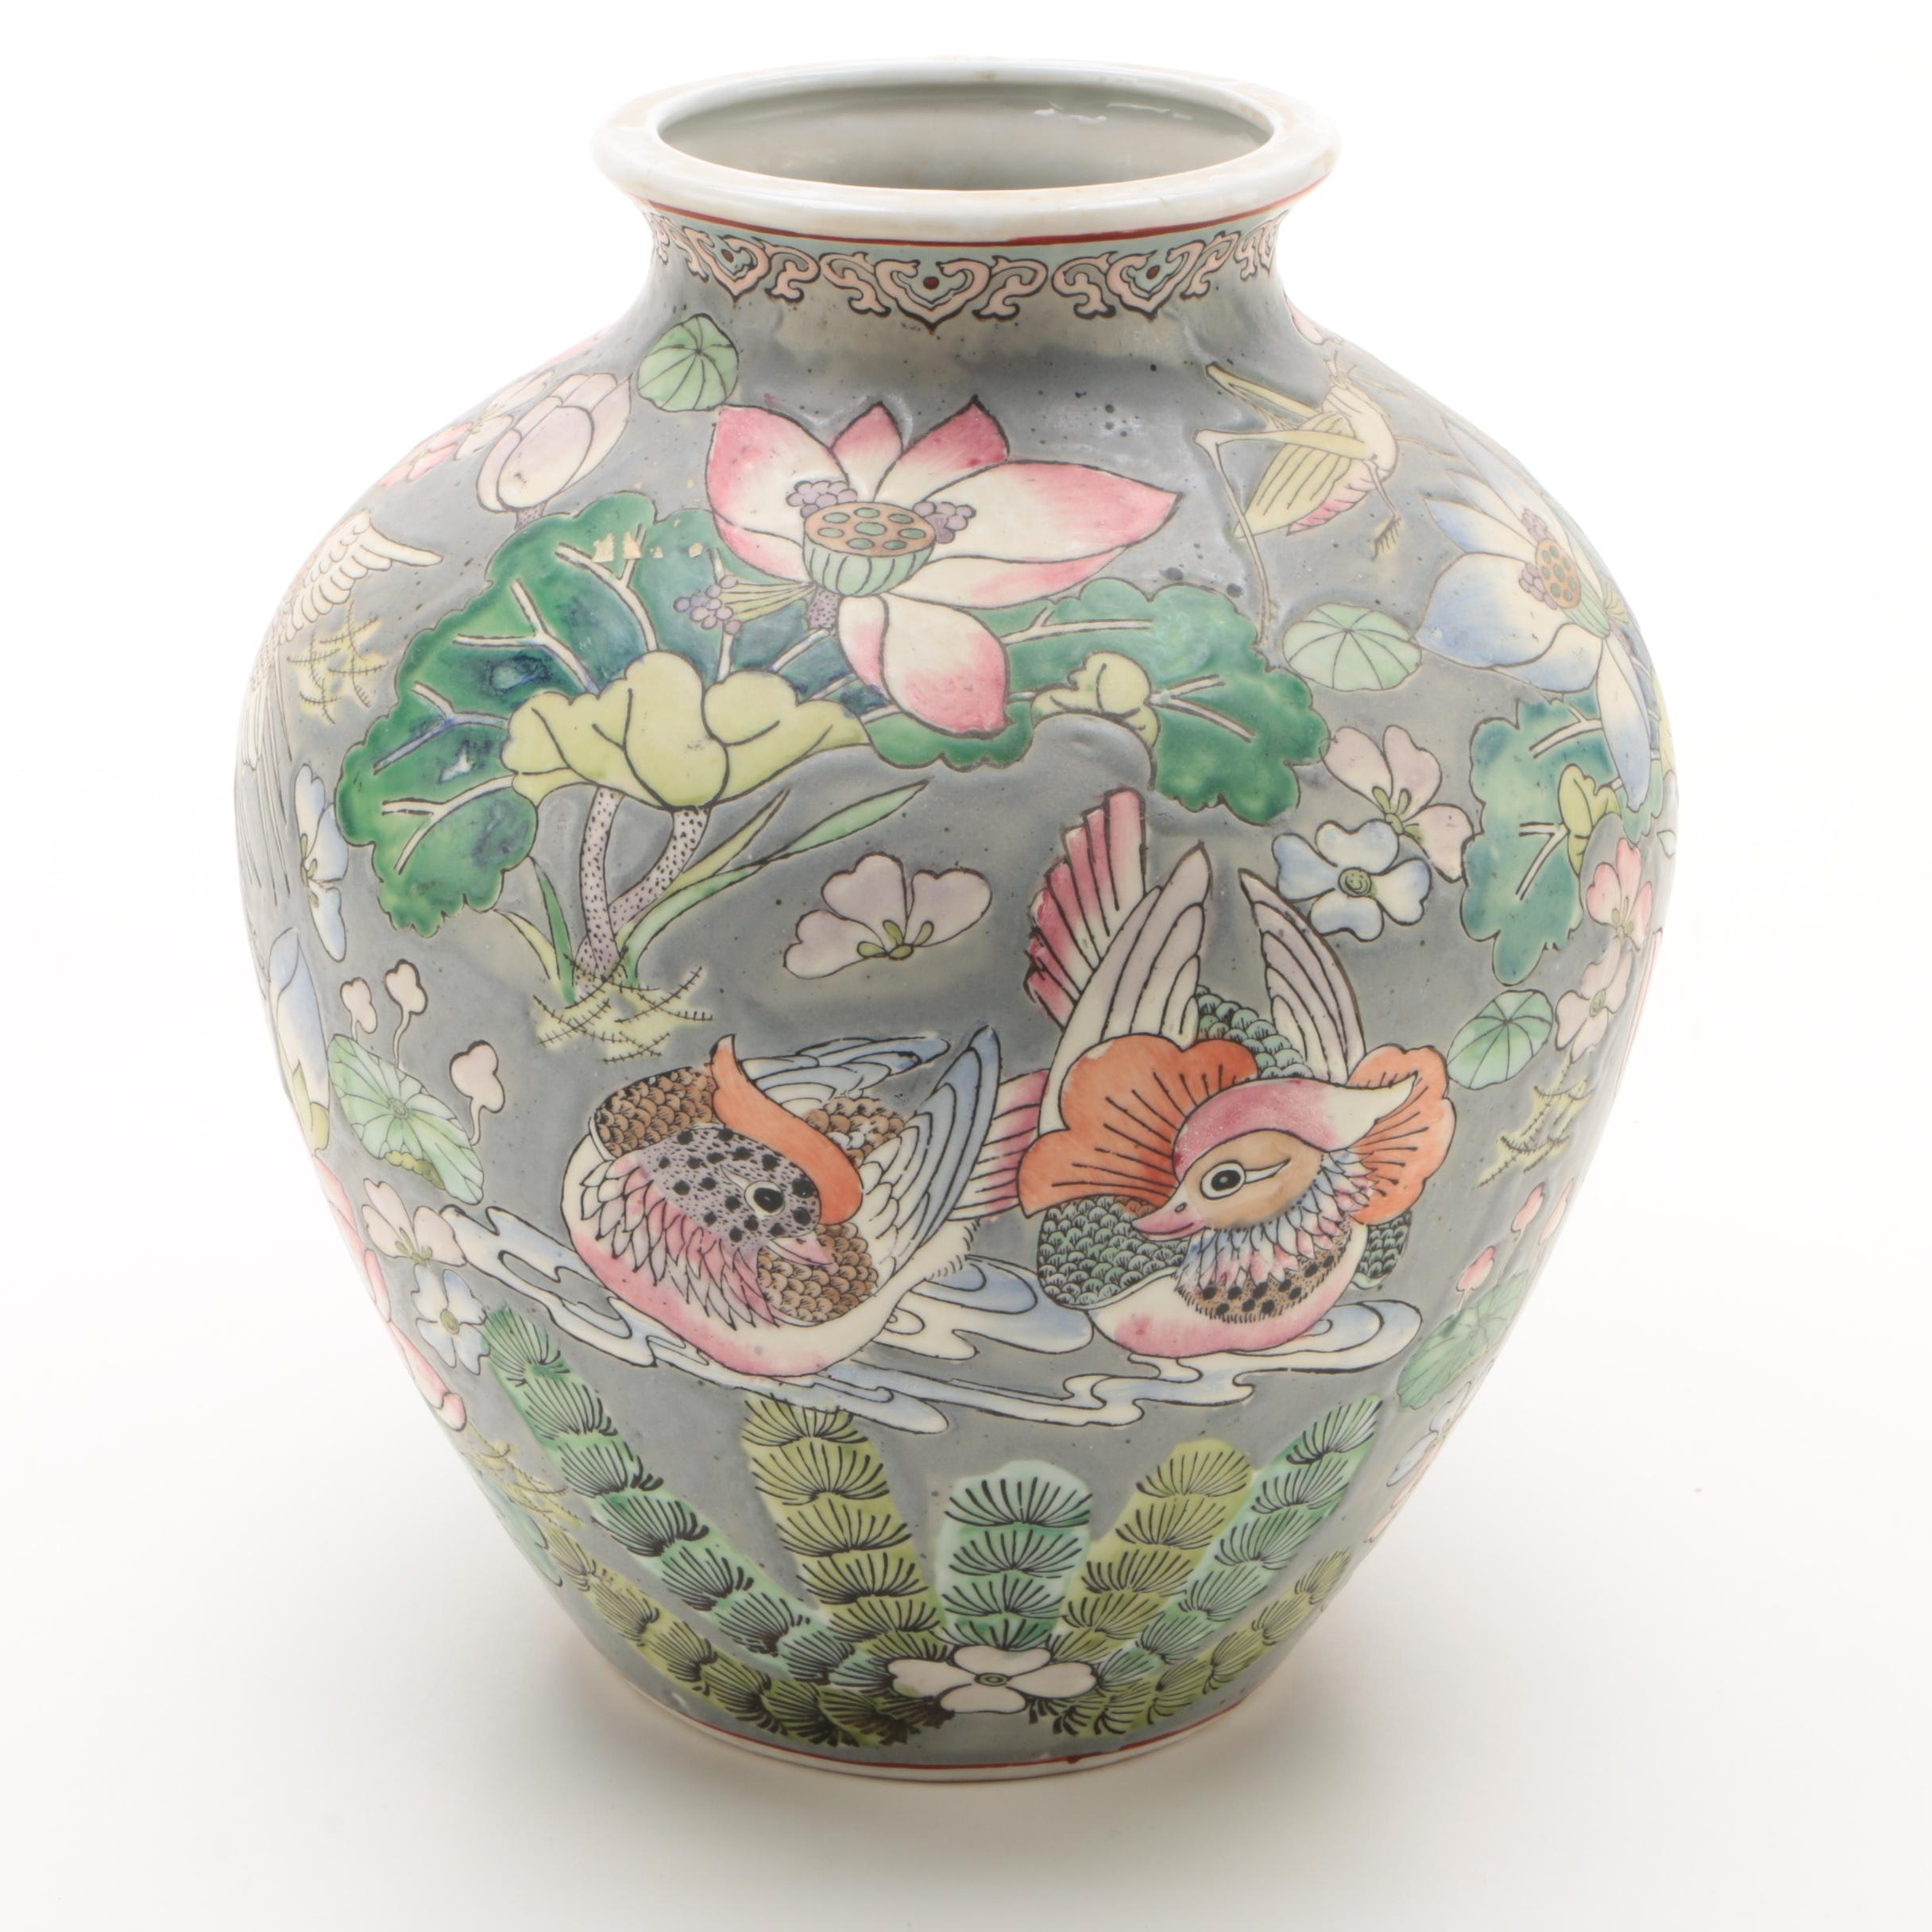 Chinese Porcelain Vase with Wetlands Motif, Late 20th Century